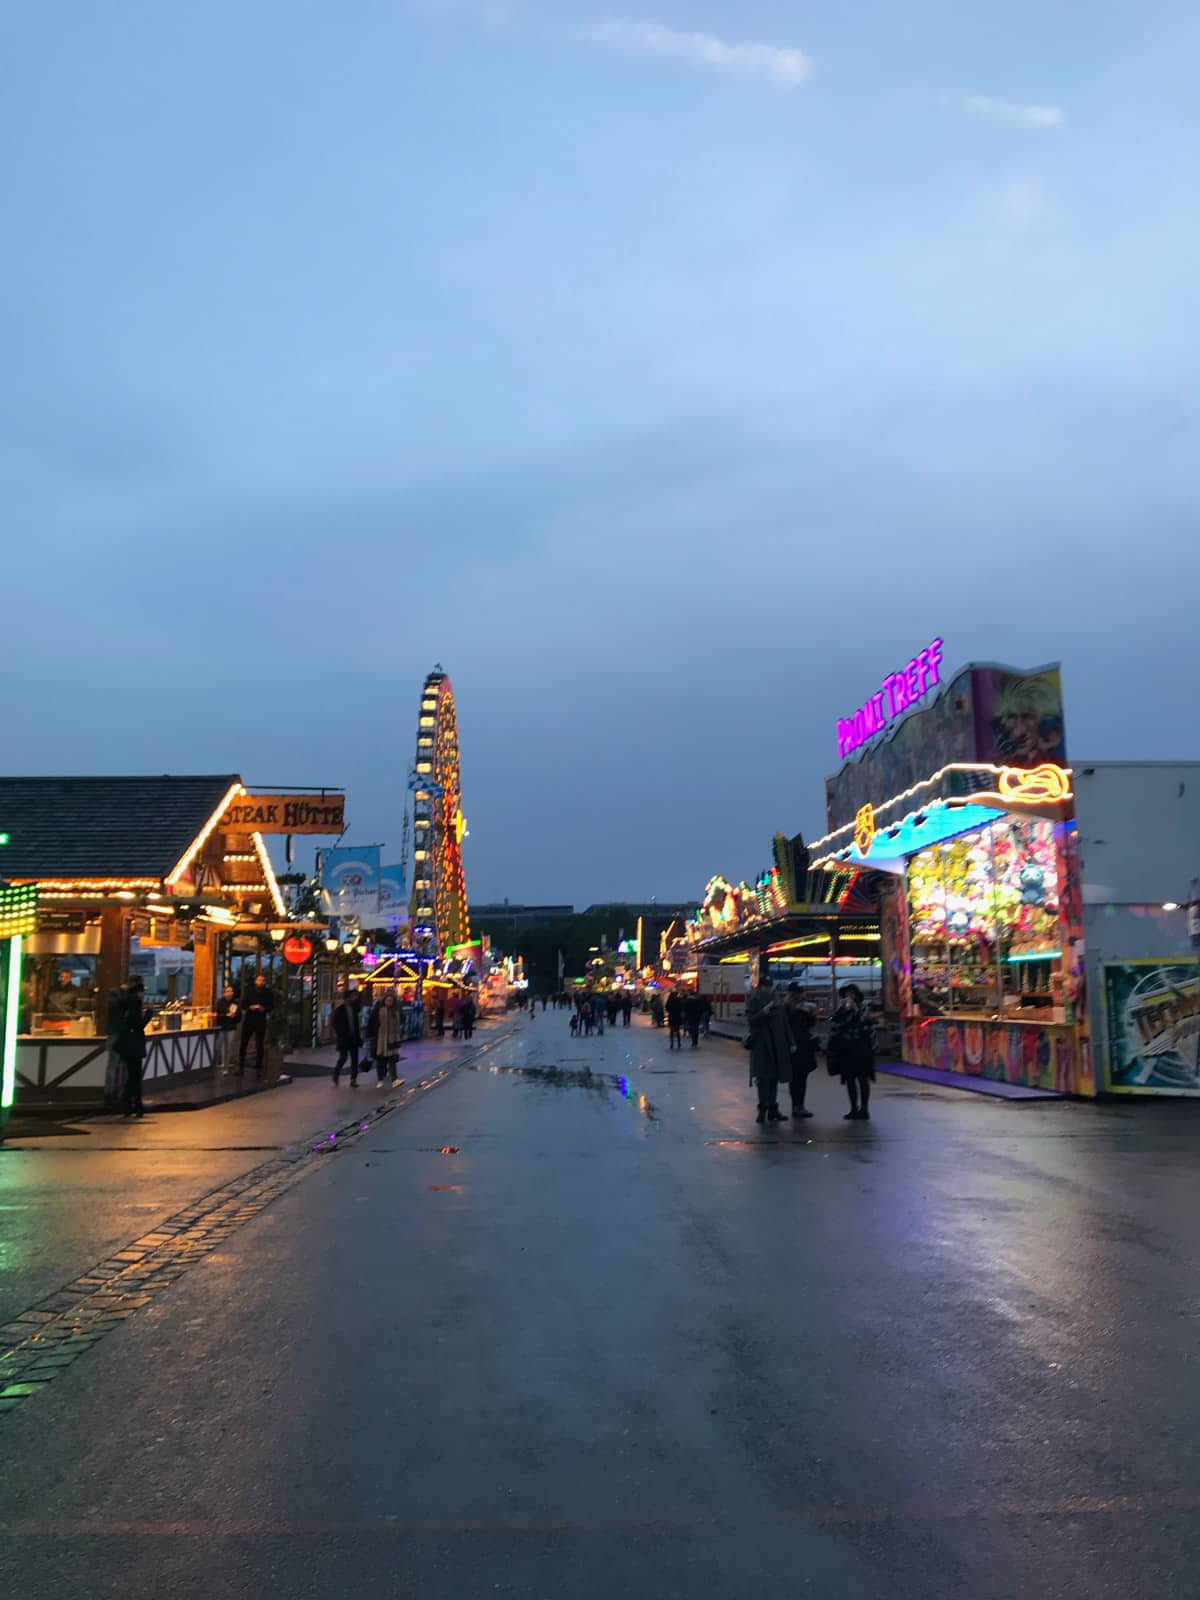 A temporary fairground area at night. The rides have their lights on.